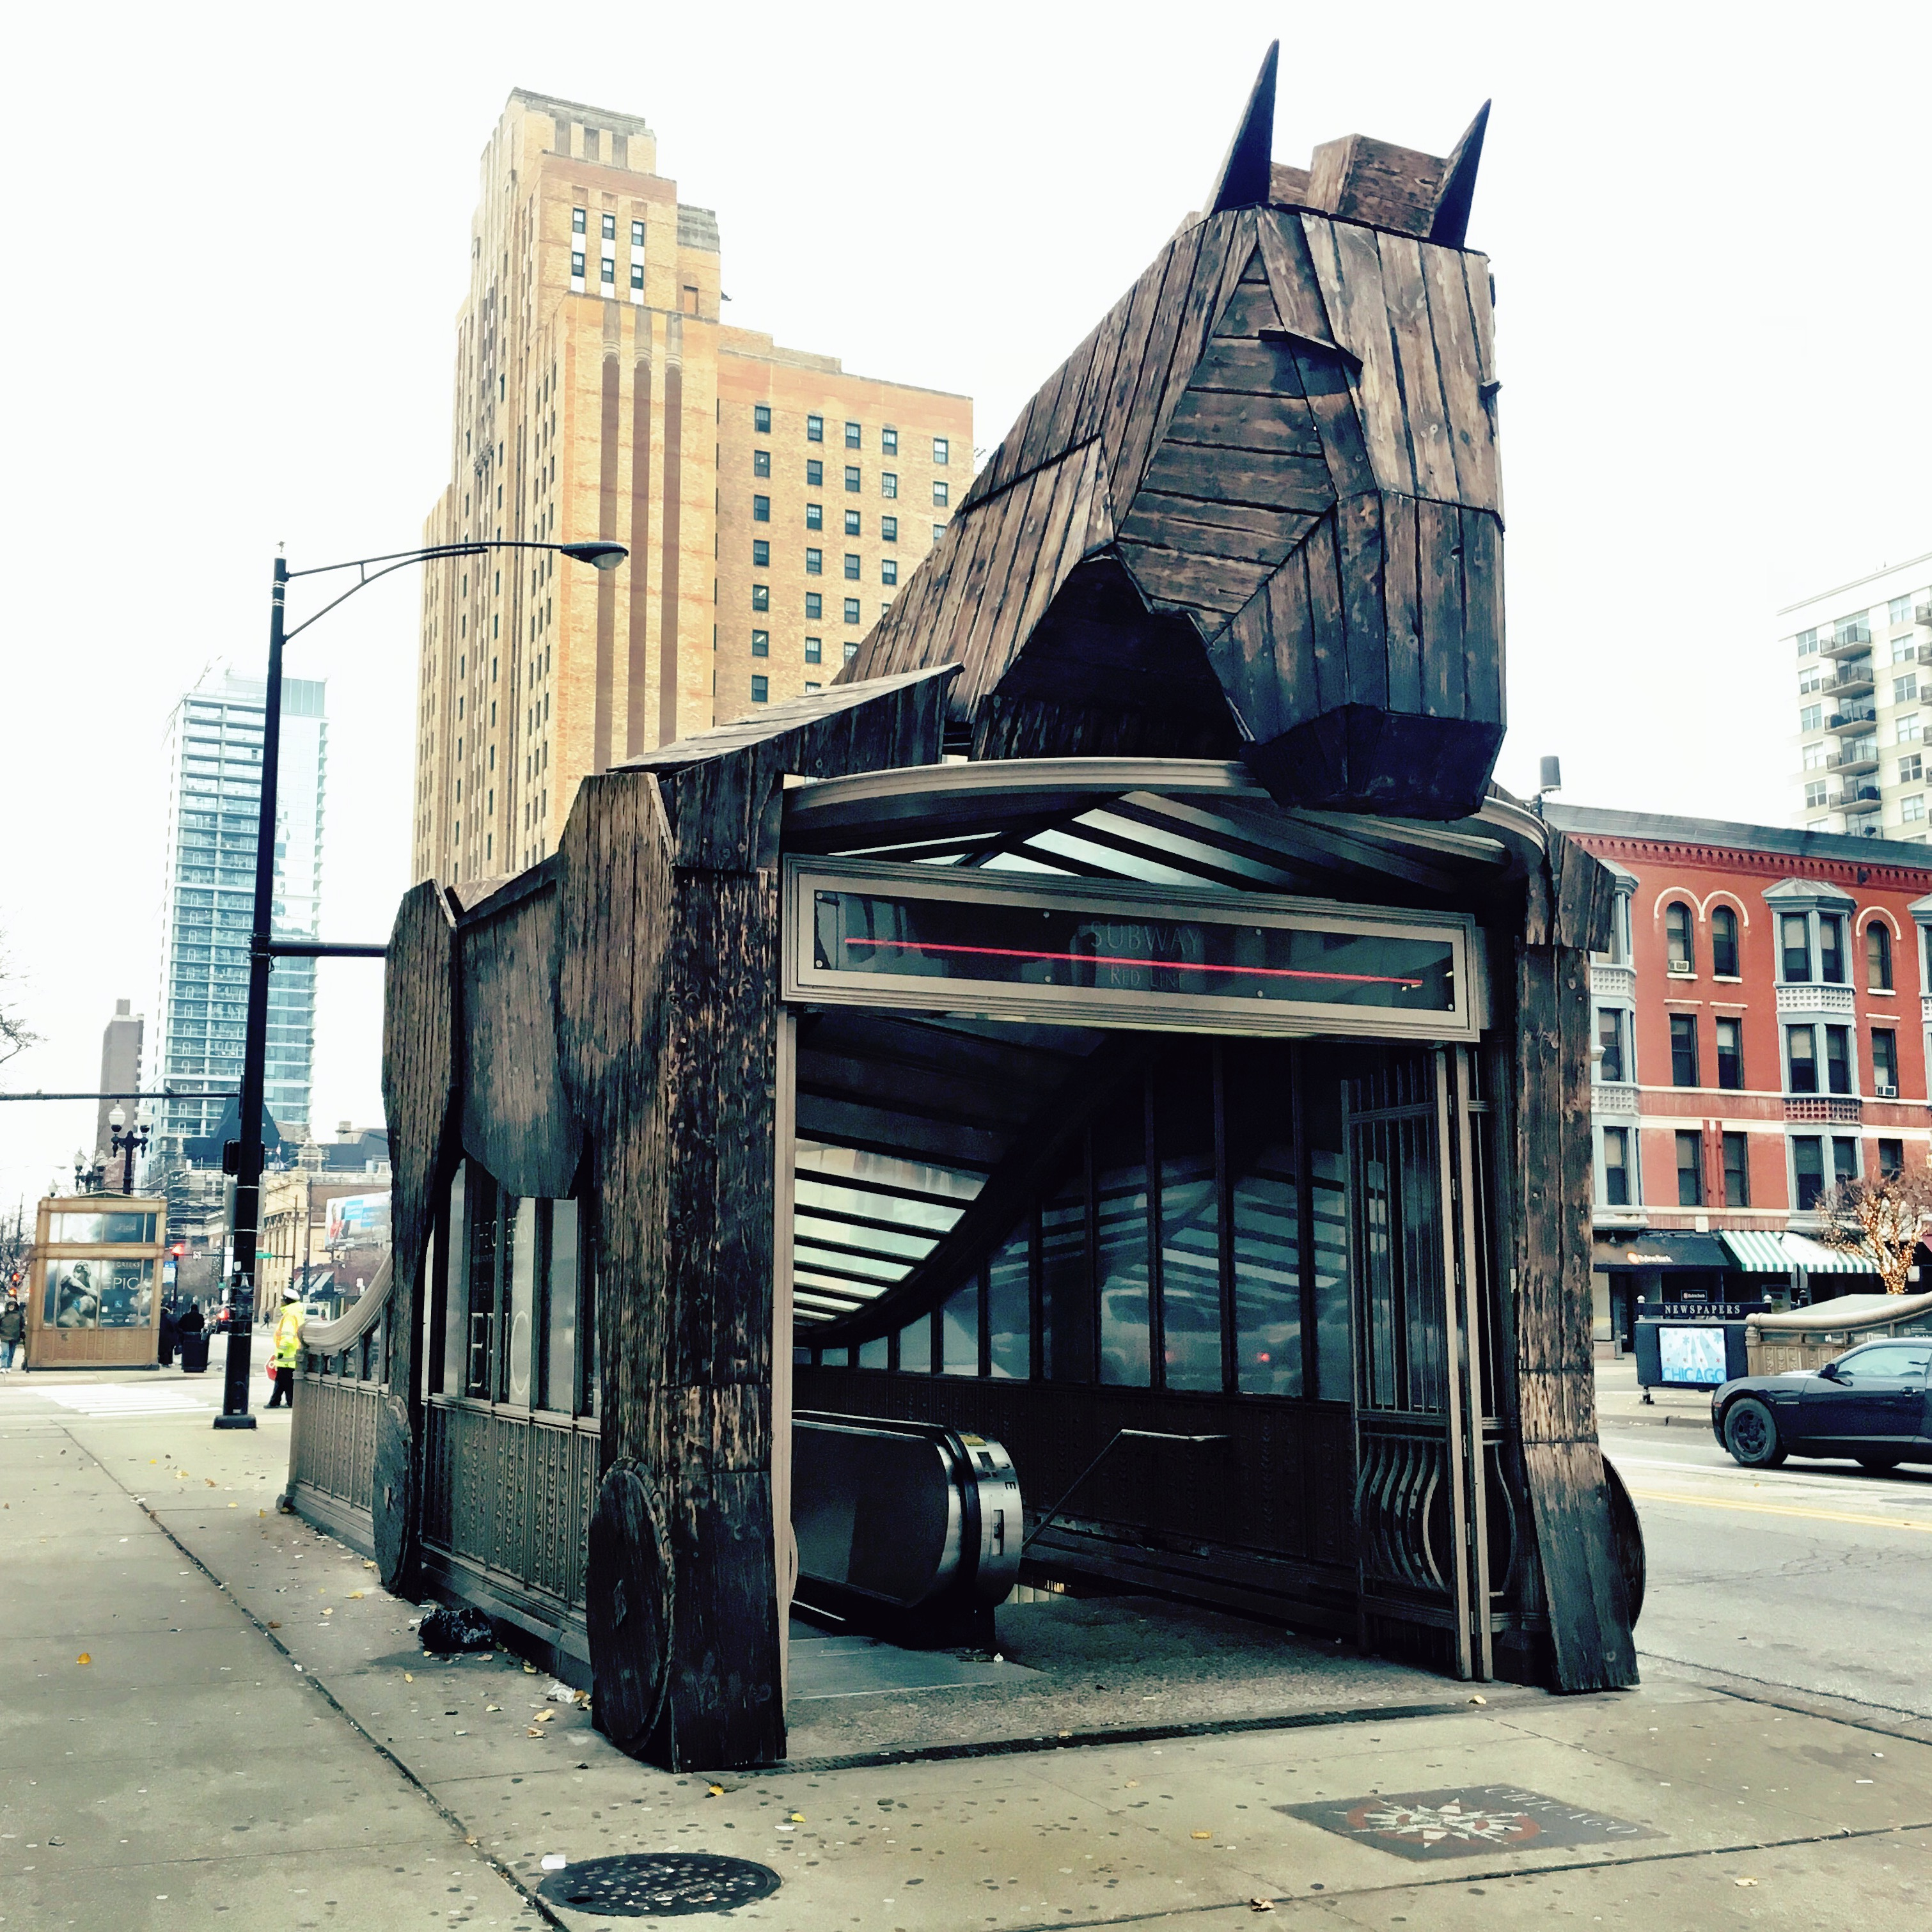 entrace to chicago red line covered by trojan horse raven mai